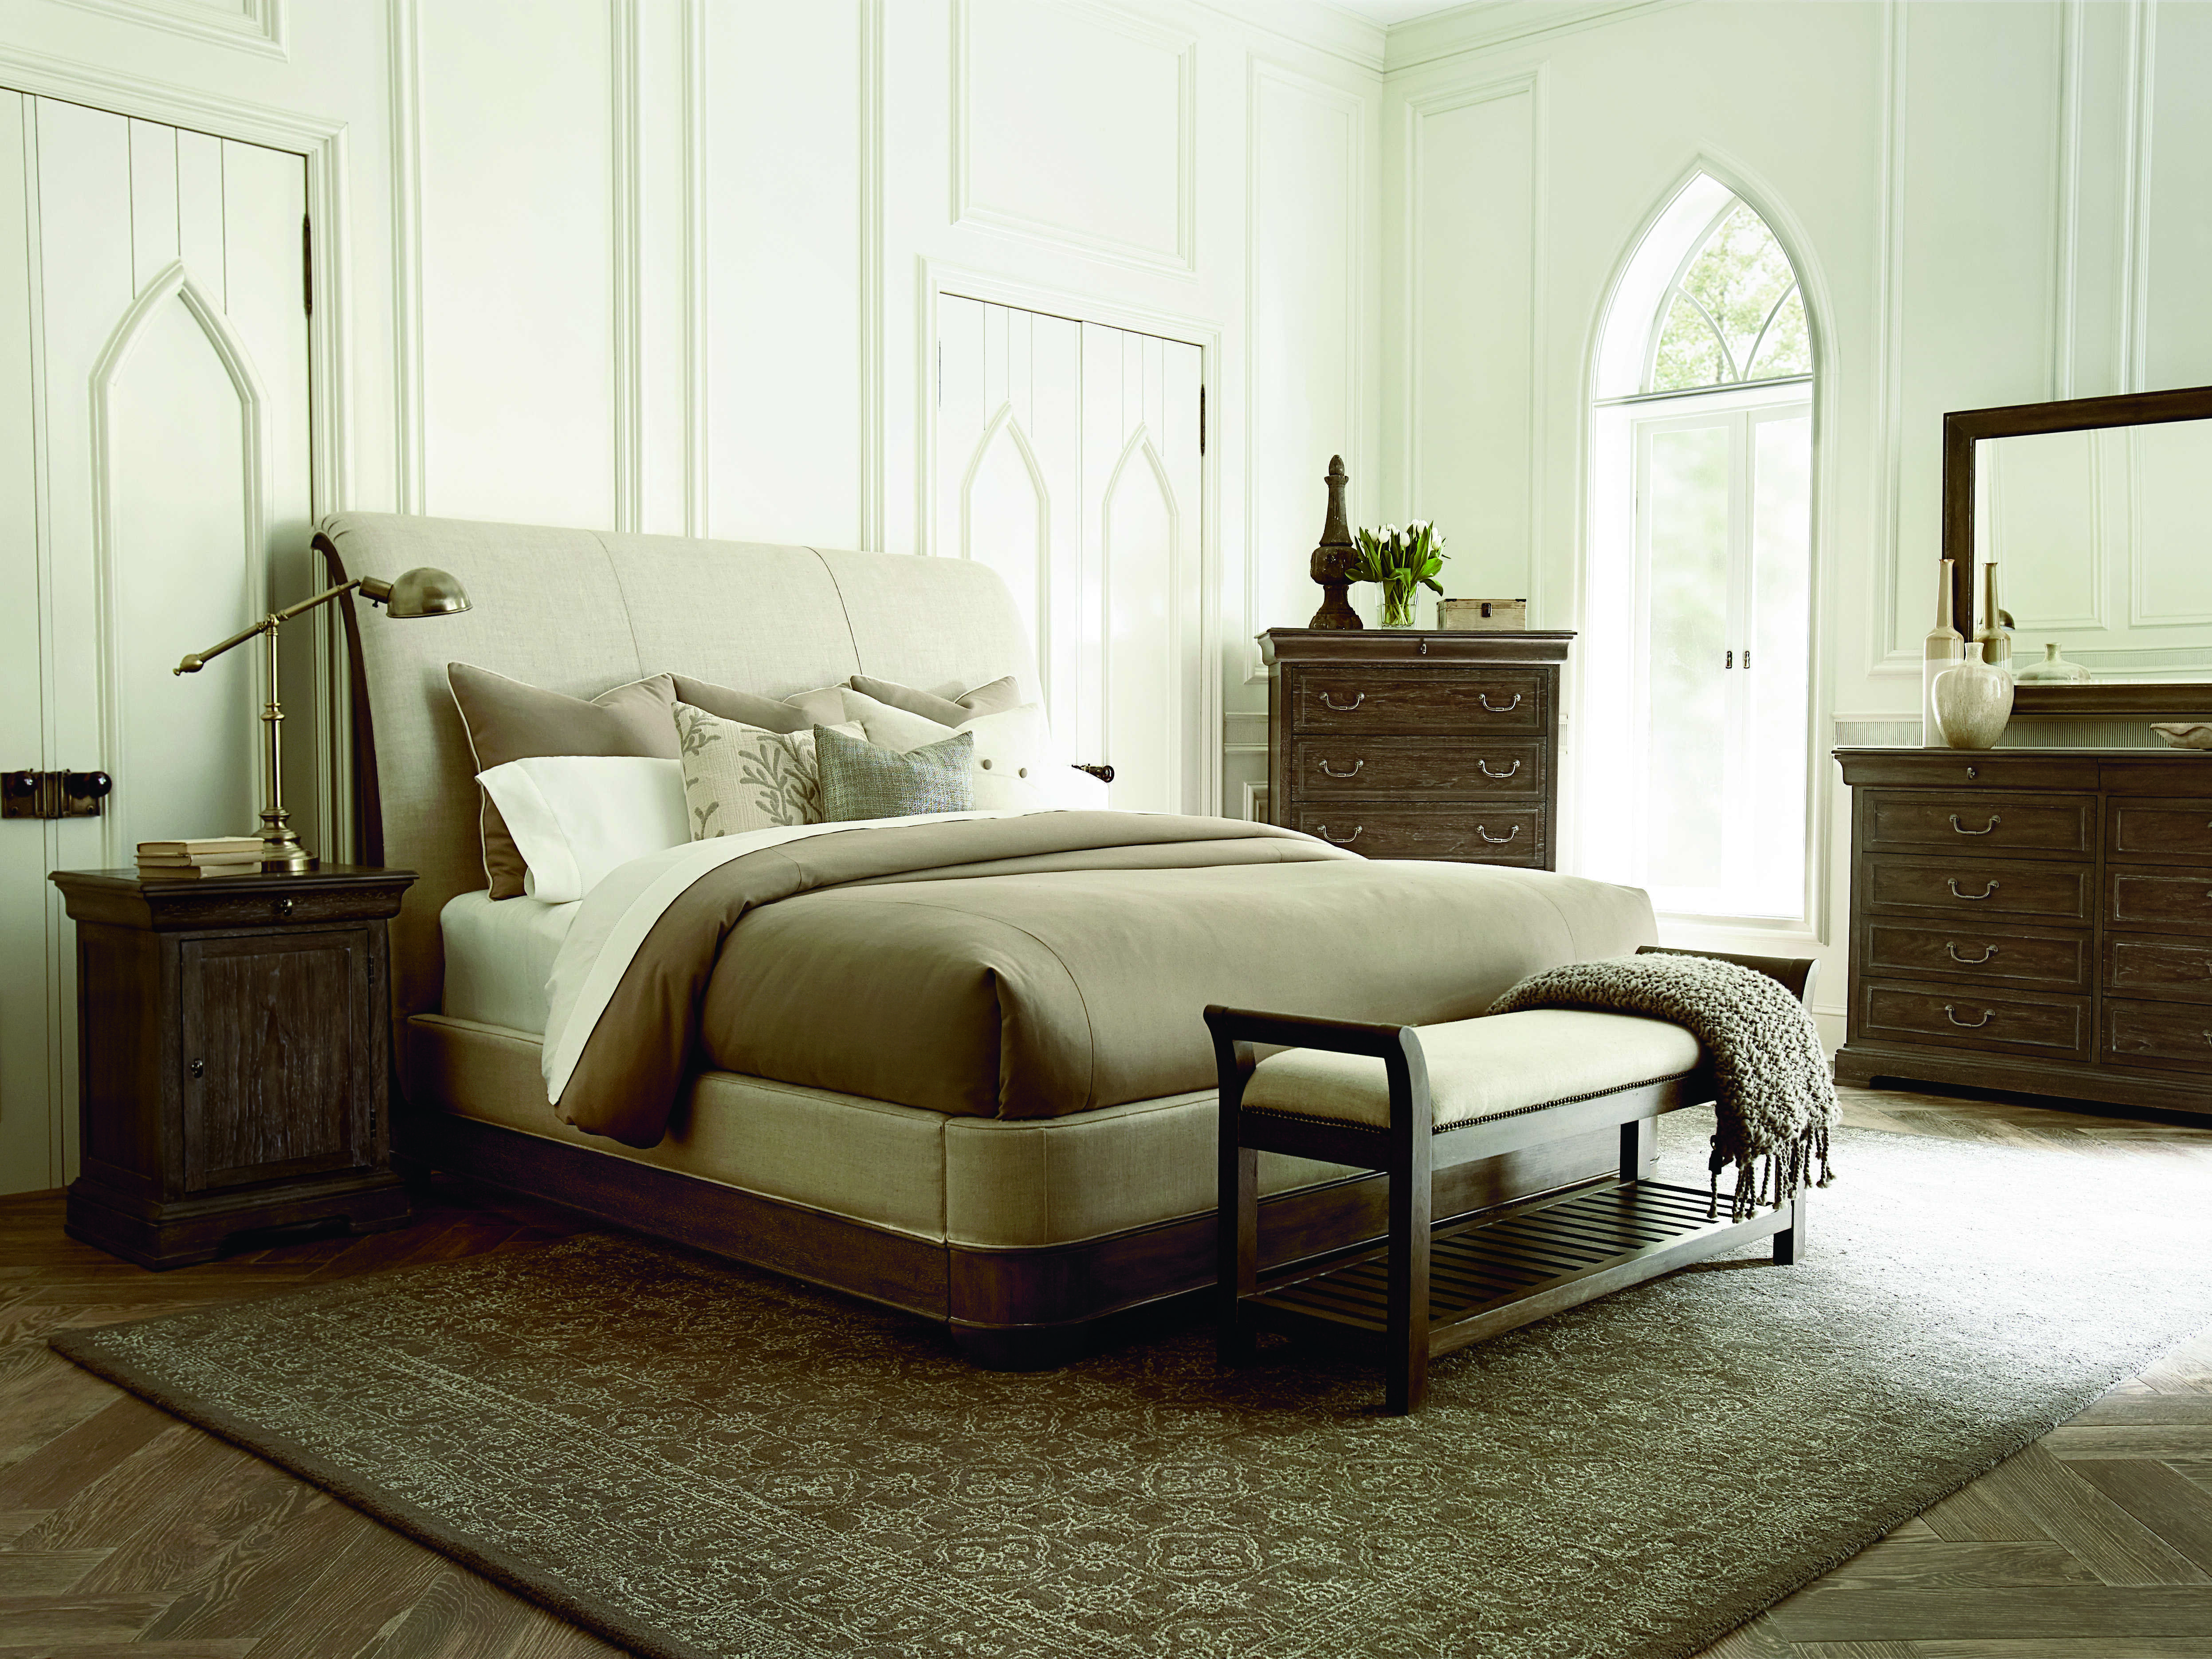 Art furniture saint germain coffee accent bench at2151491513 for Albany st germain sectional sofa chaise